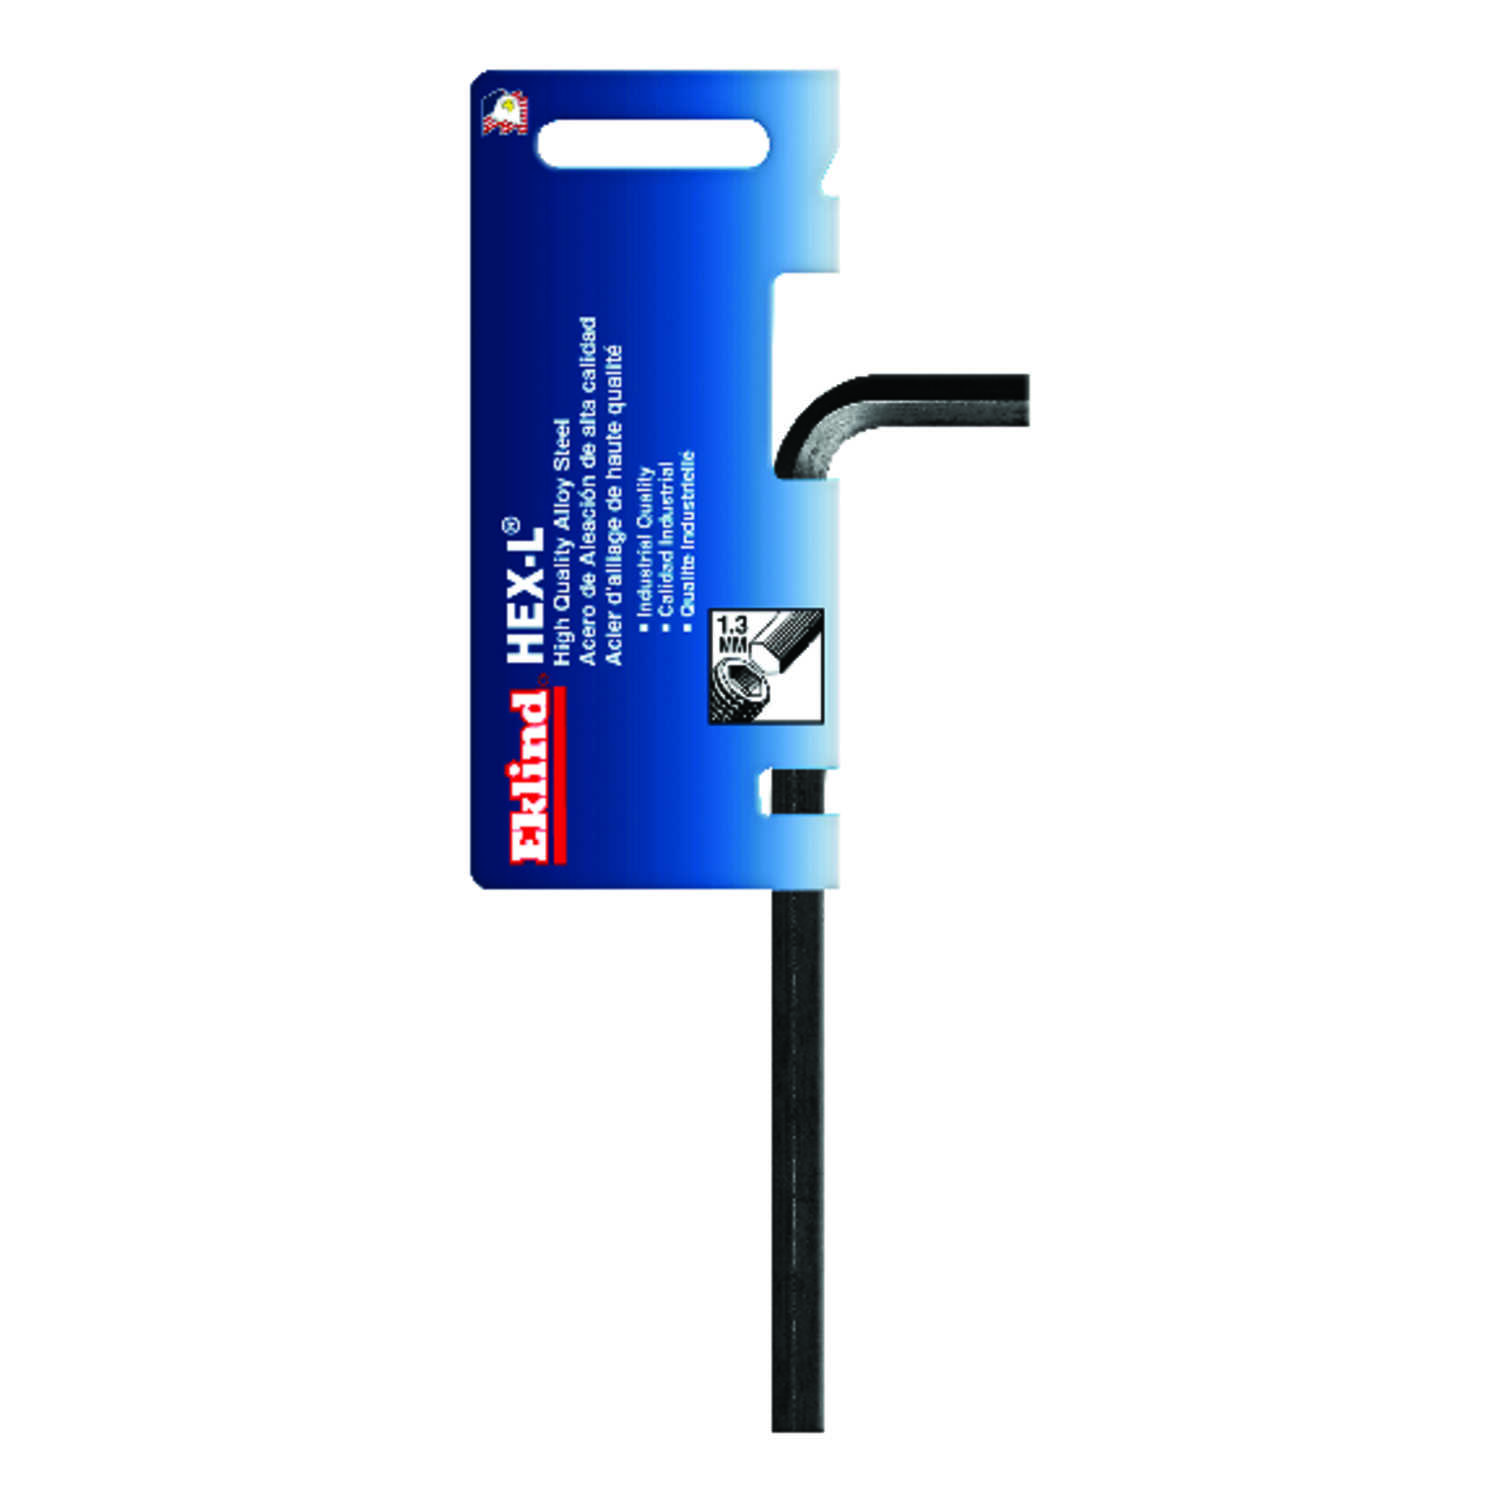 Eklind Tool  1.3mm  Metric  Long Arm  Hex L-Key  2.84 in. 1 pc.